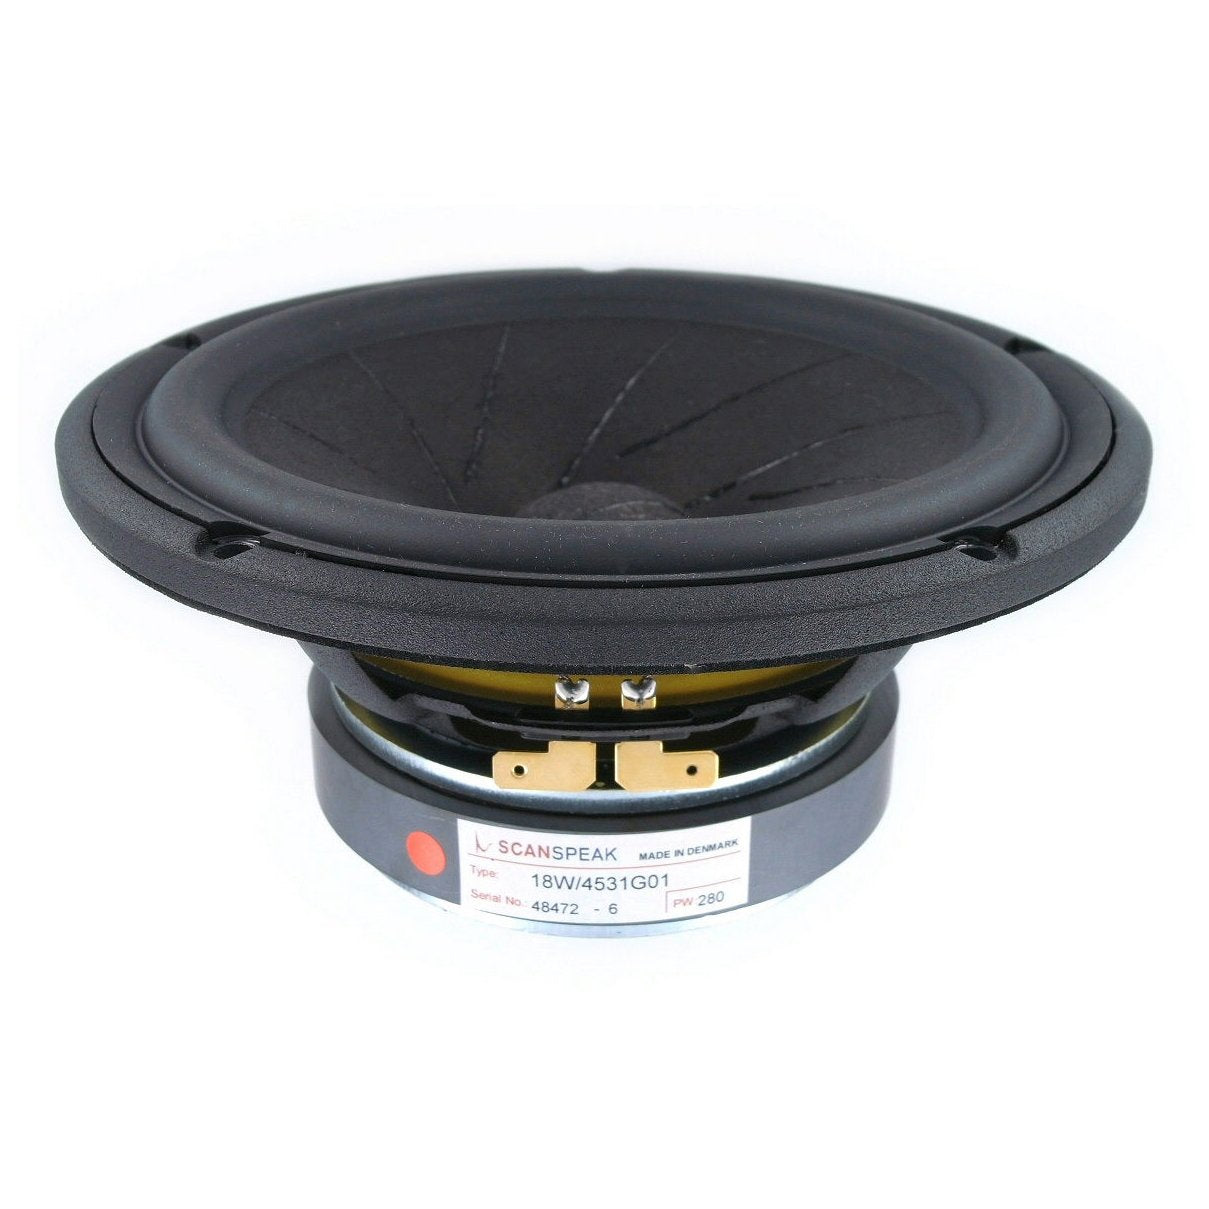 Scanspeak Revelator 18W/4531G01 Midwoofer - Willys-Hifi Ltd